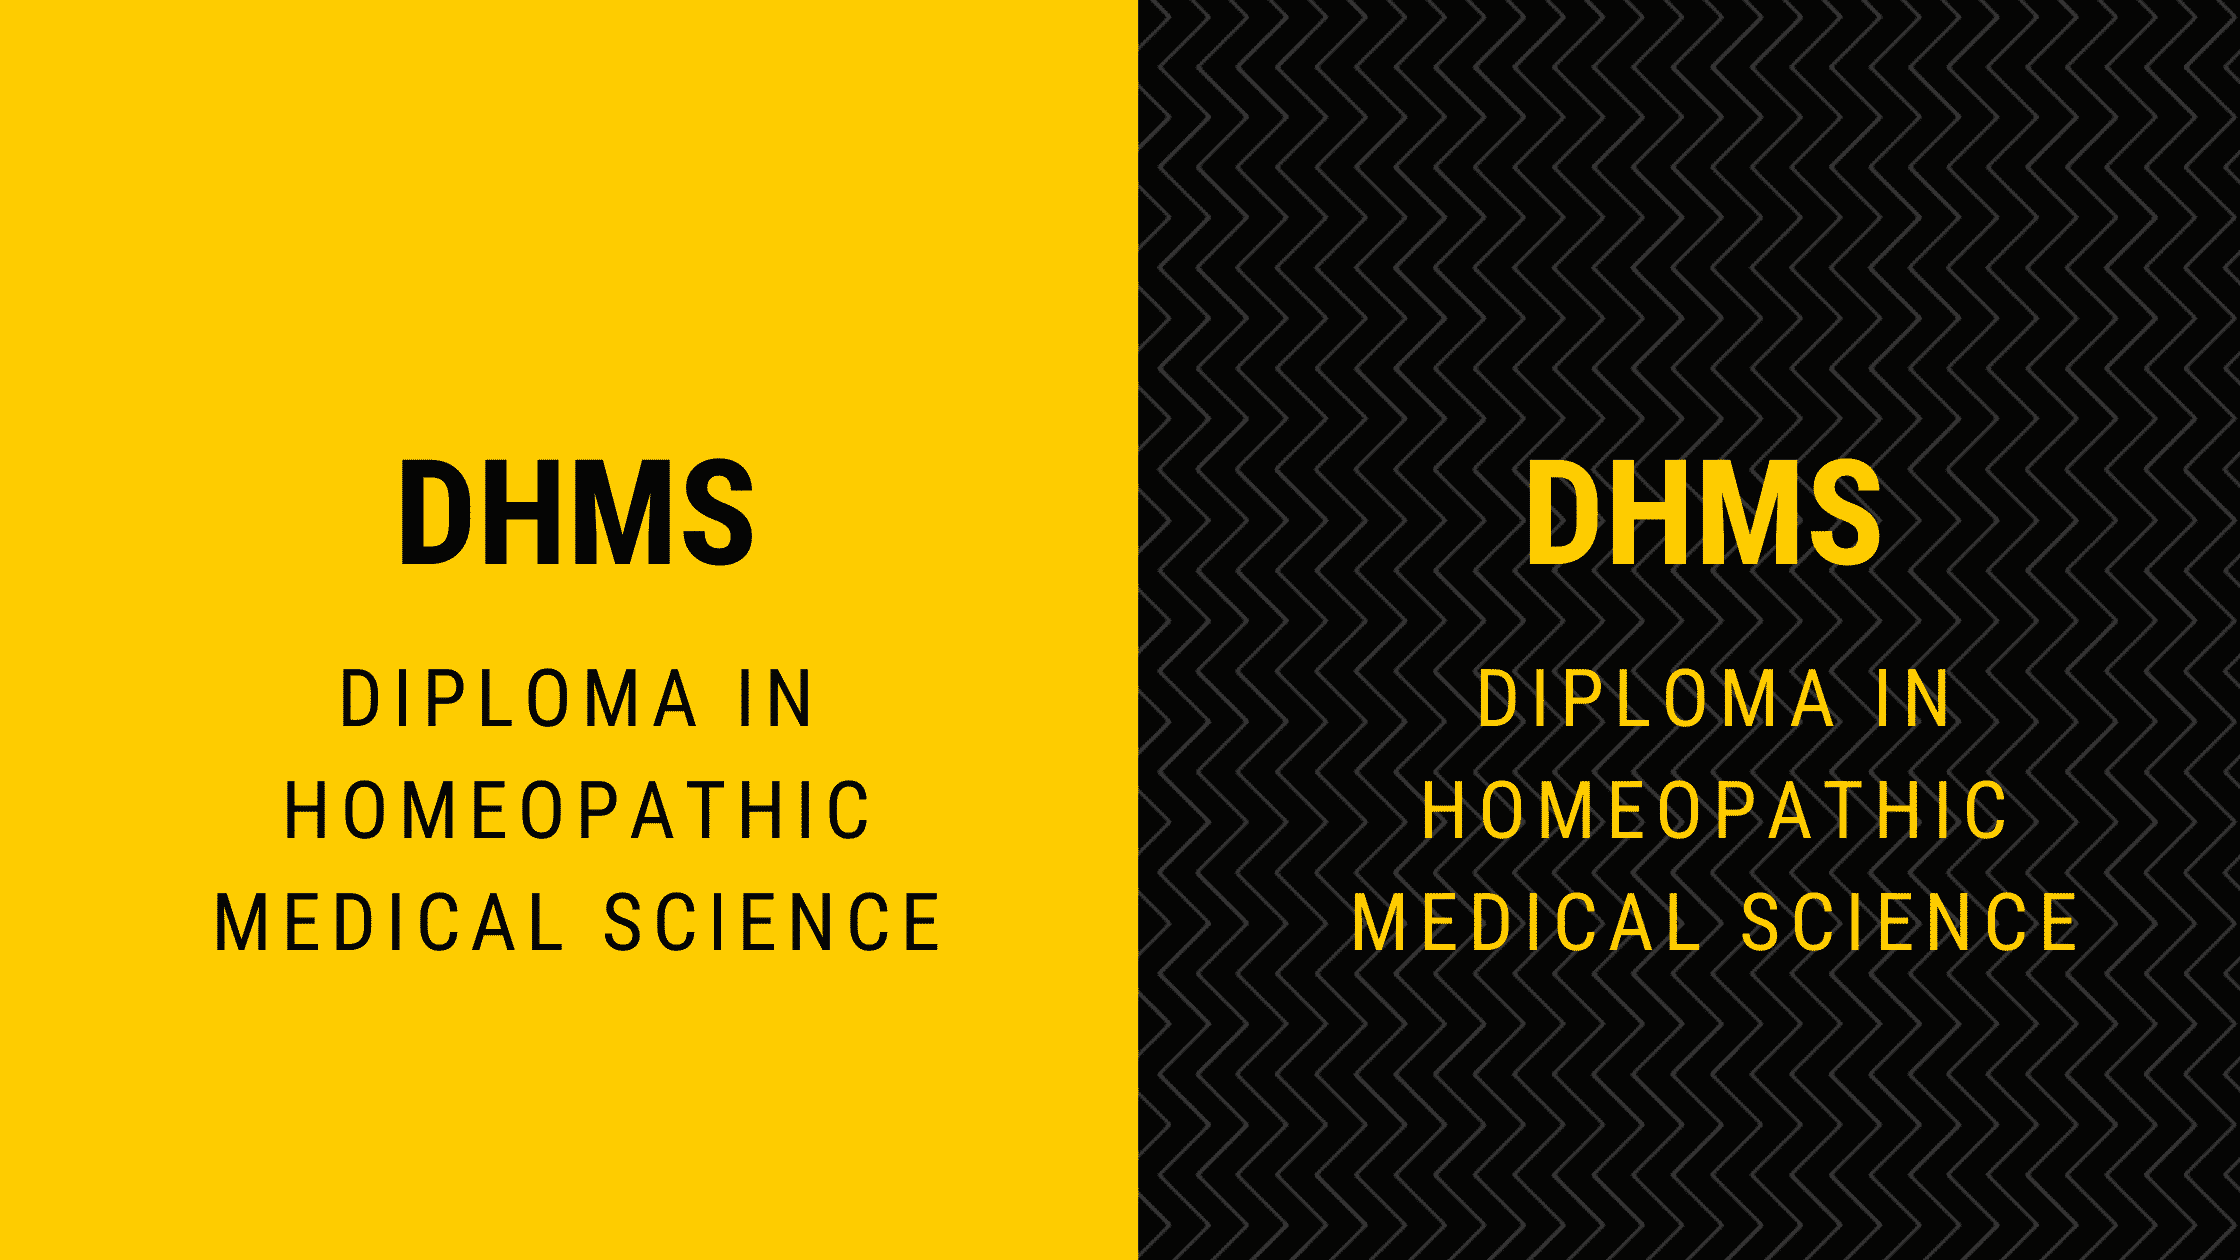 Bachelors or Diploma in Homeopathic Medical Science